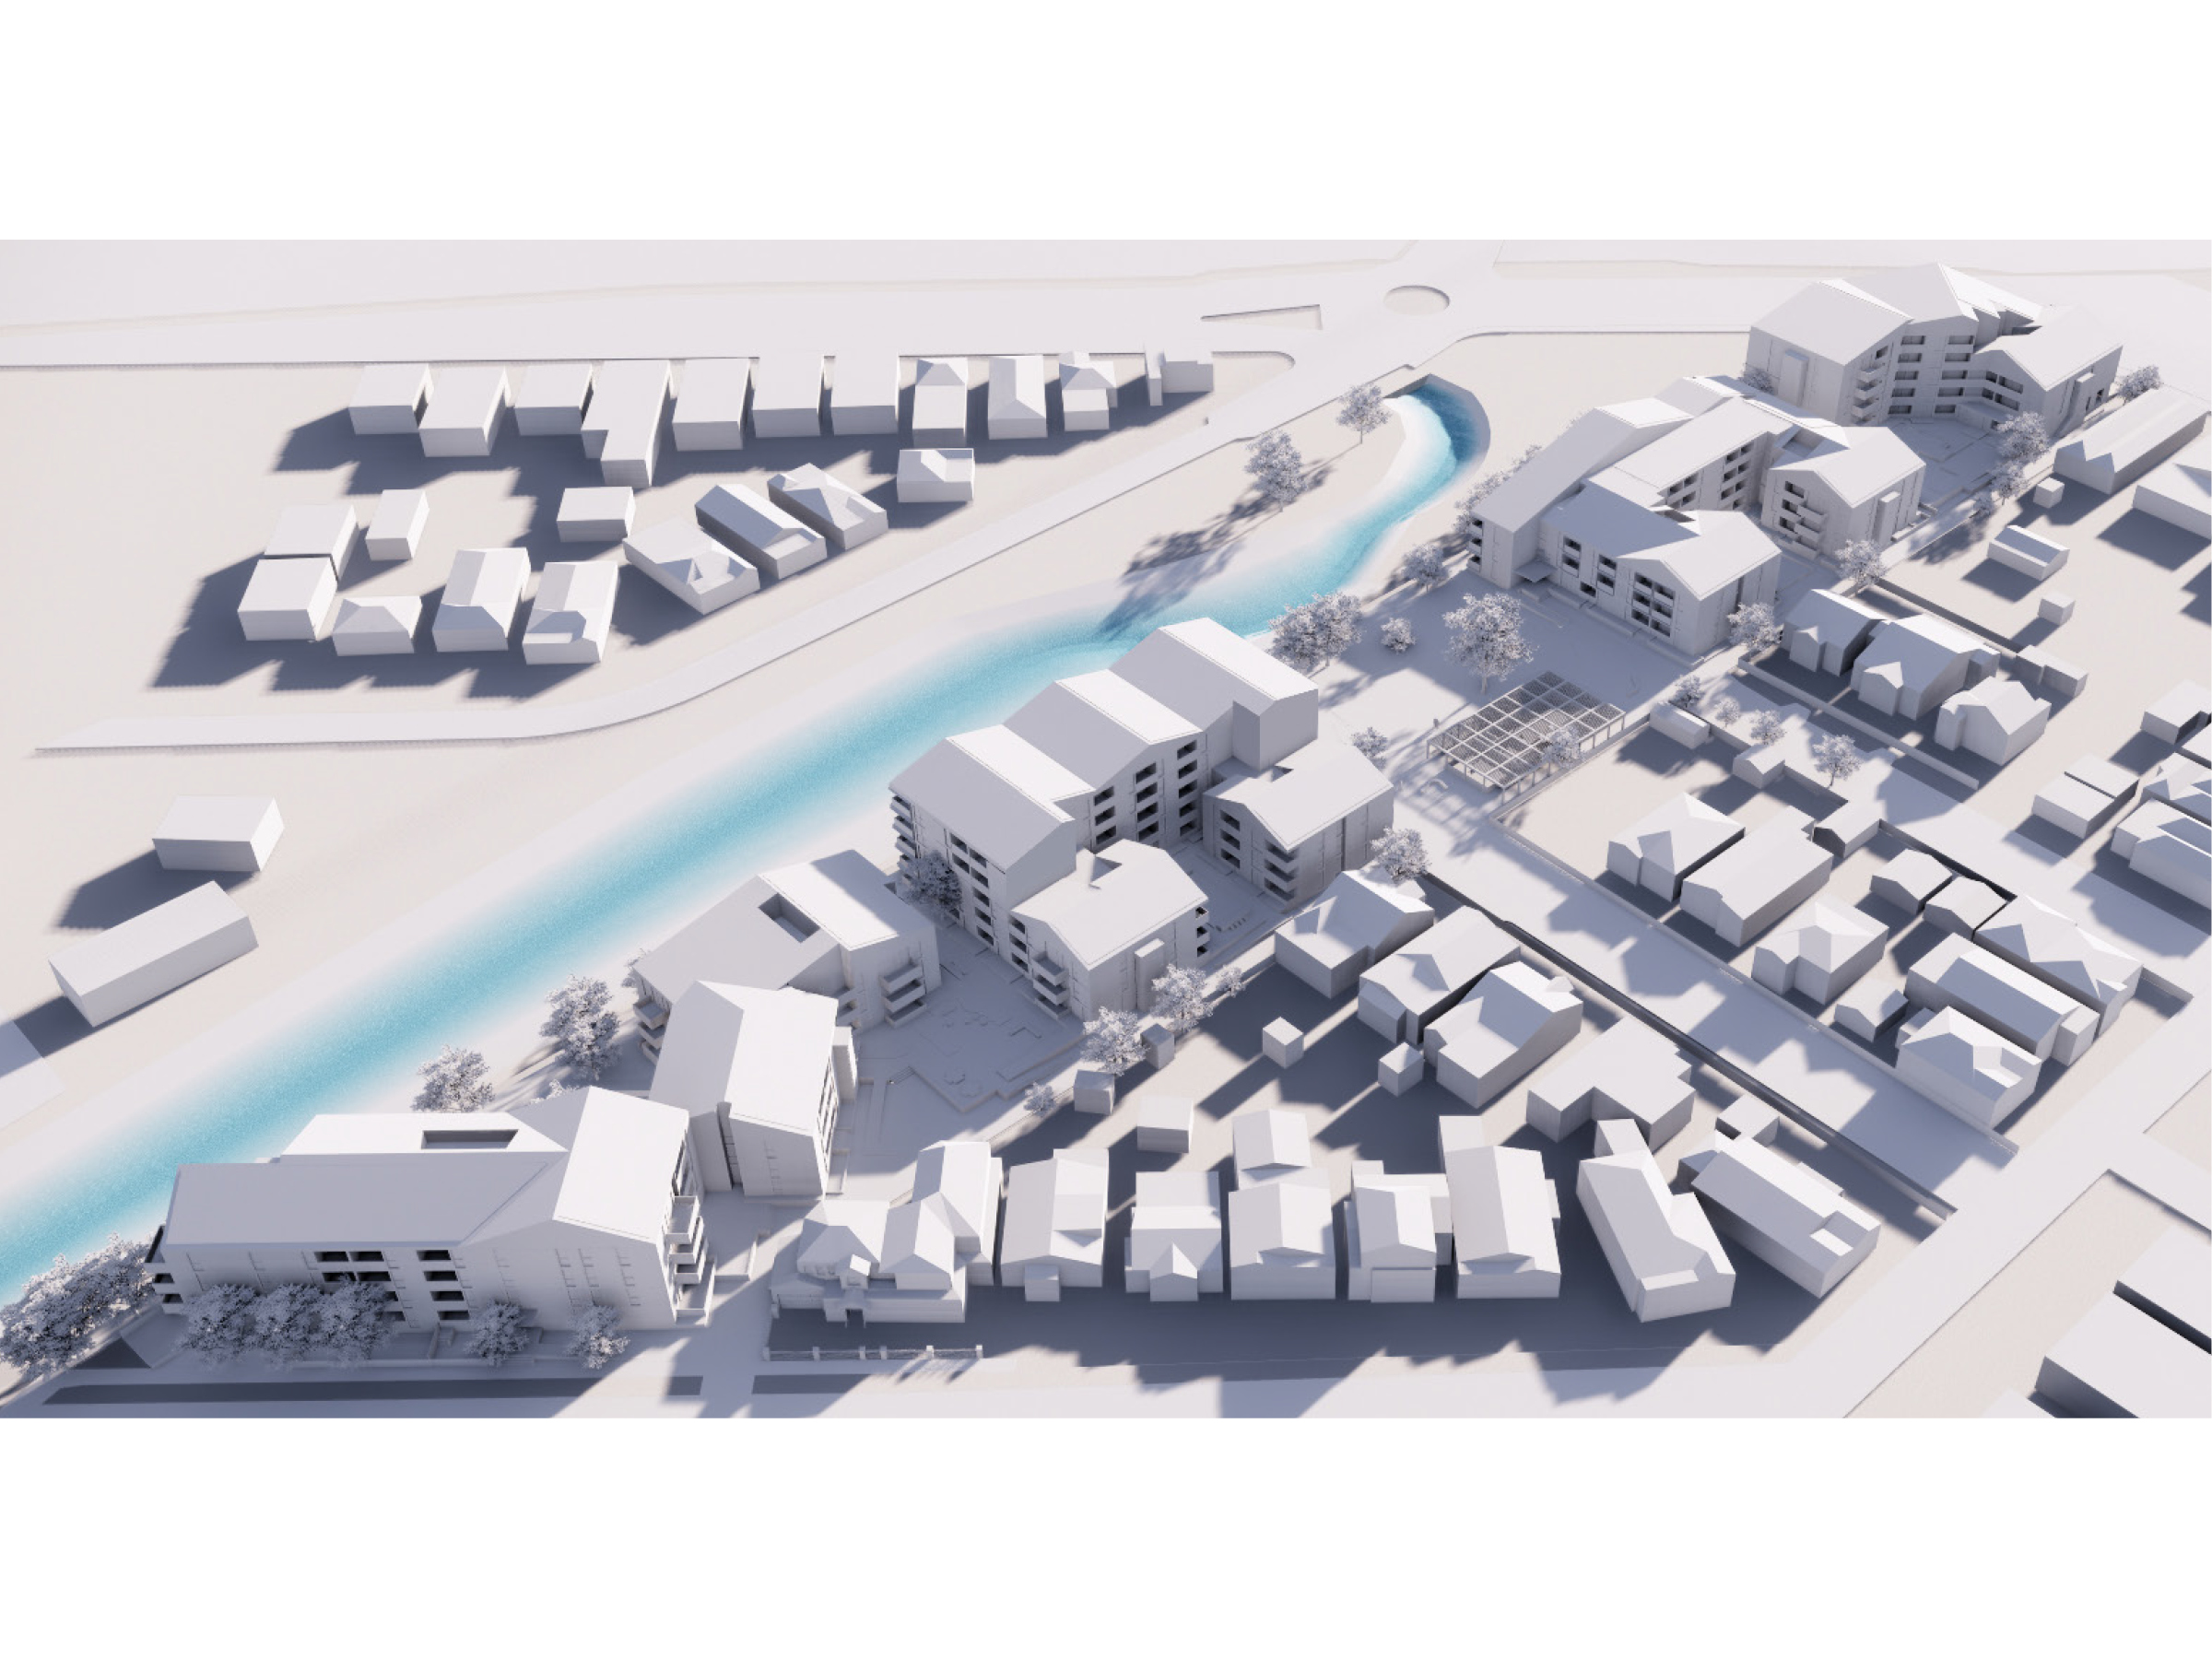 Artist impression showing an aerial view of the new development looking north-west from Brickwood Street